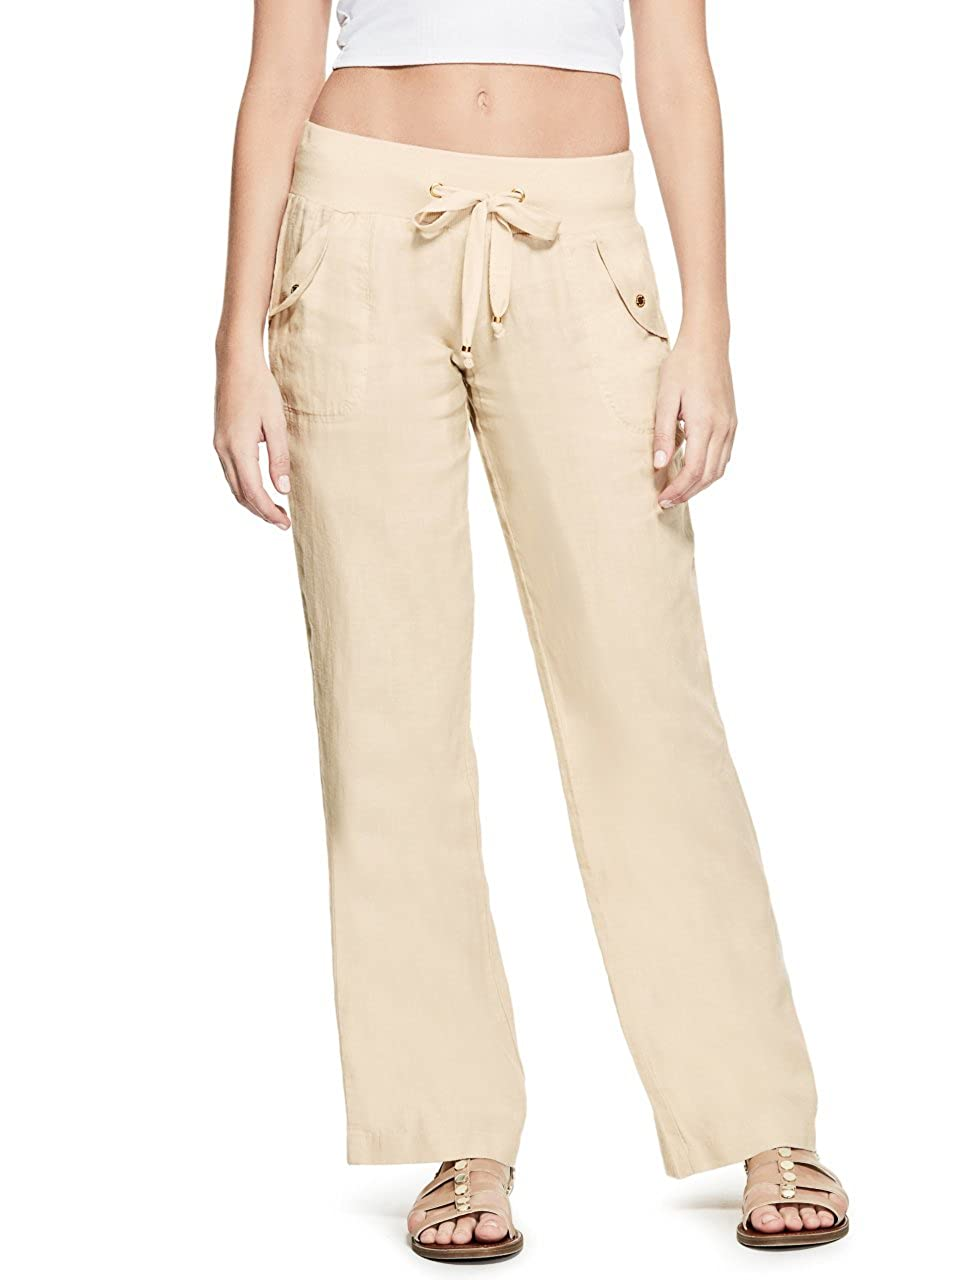 G by GUESS Shanelle Linen Pants GByGUESS R64B0100000